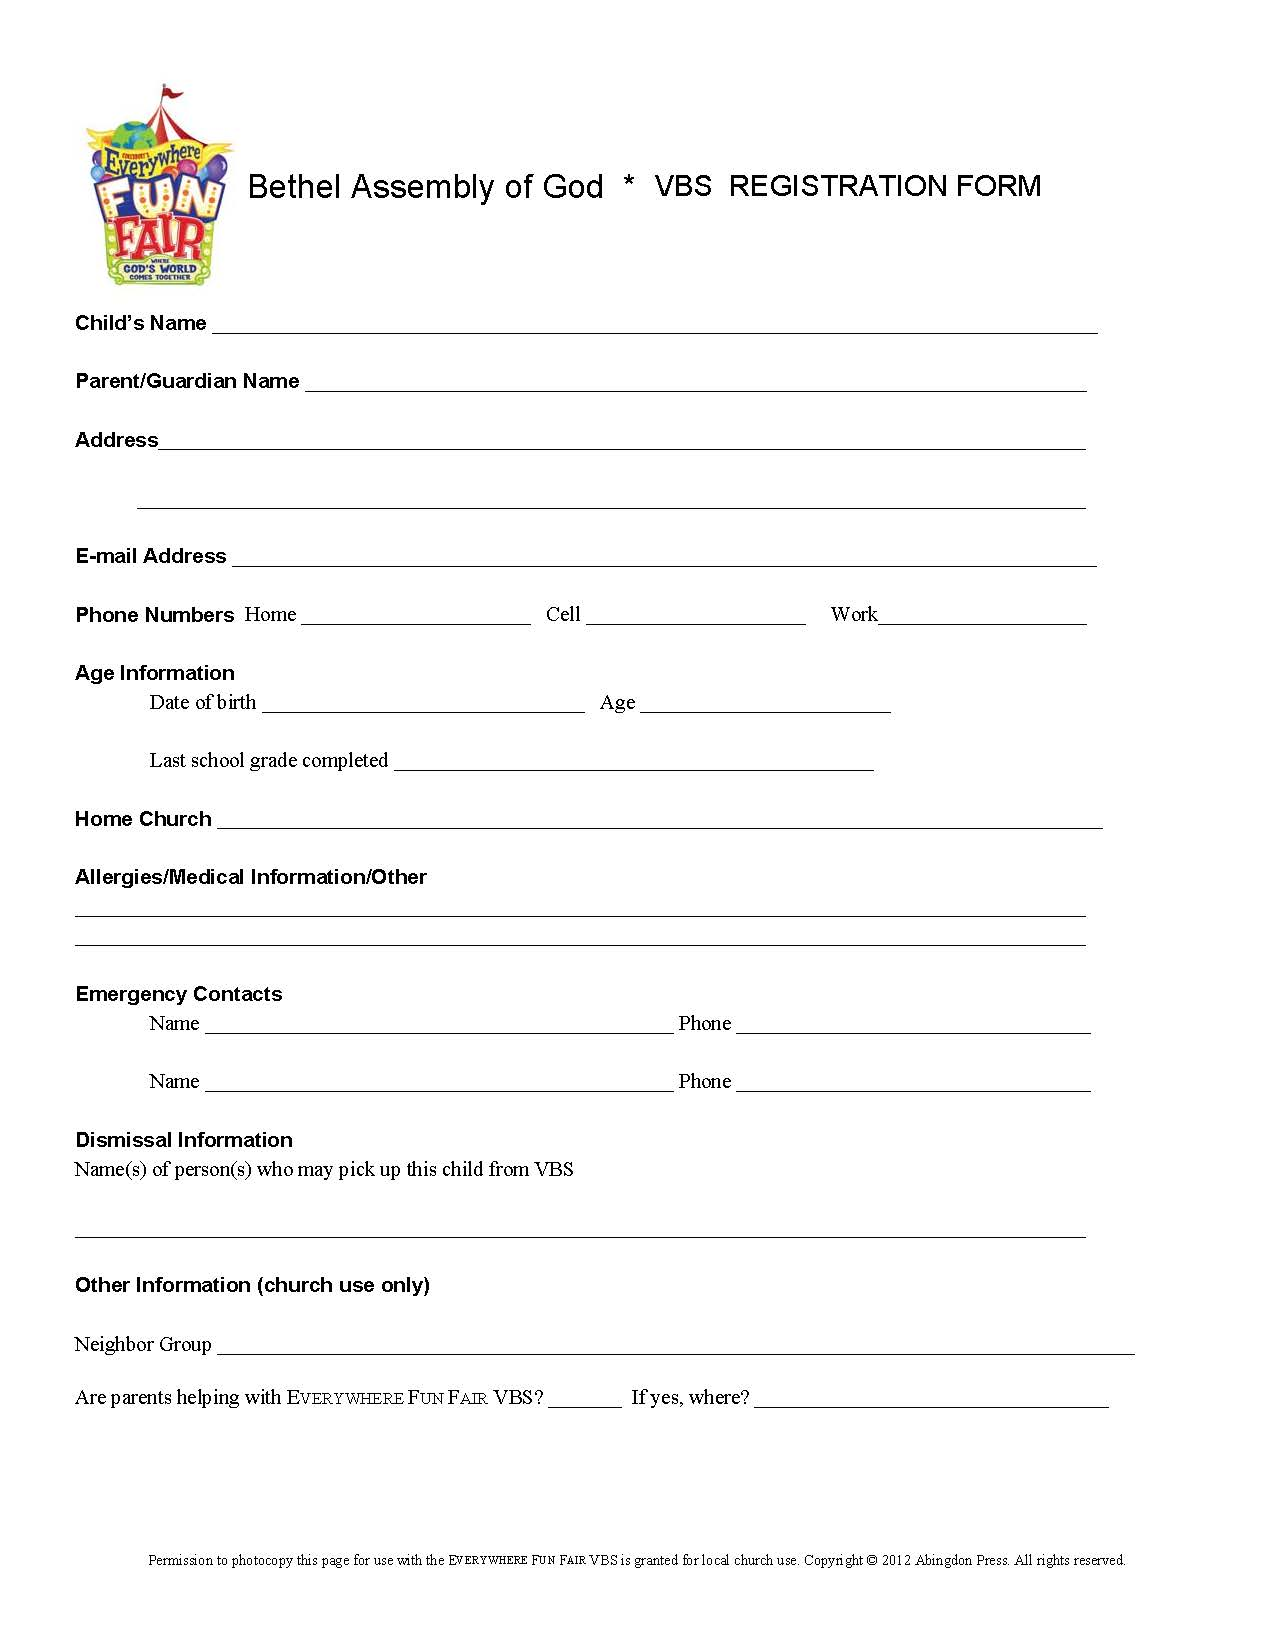 Vacation Bible School Registration Form Bethel